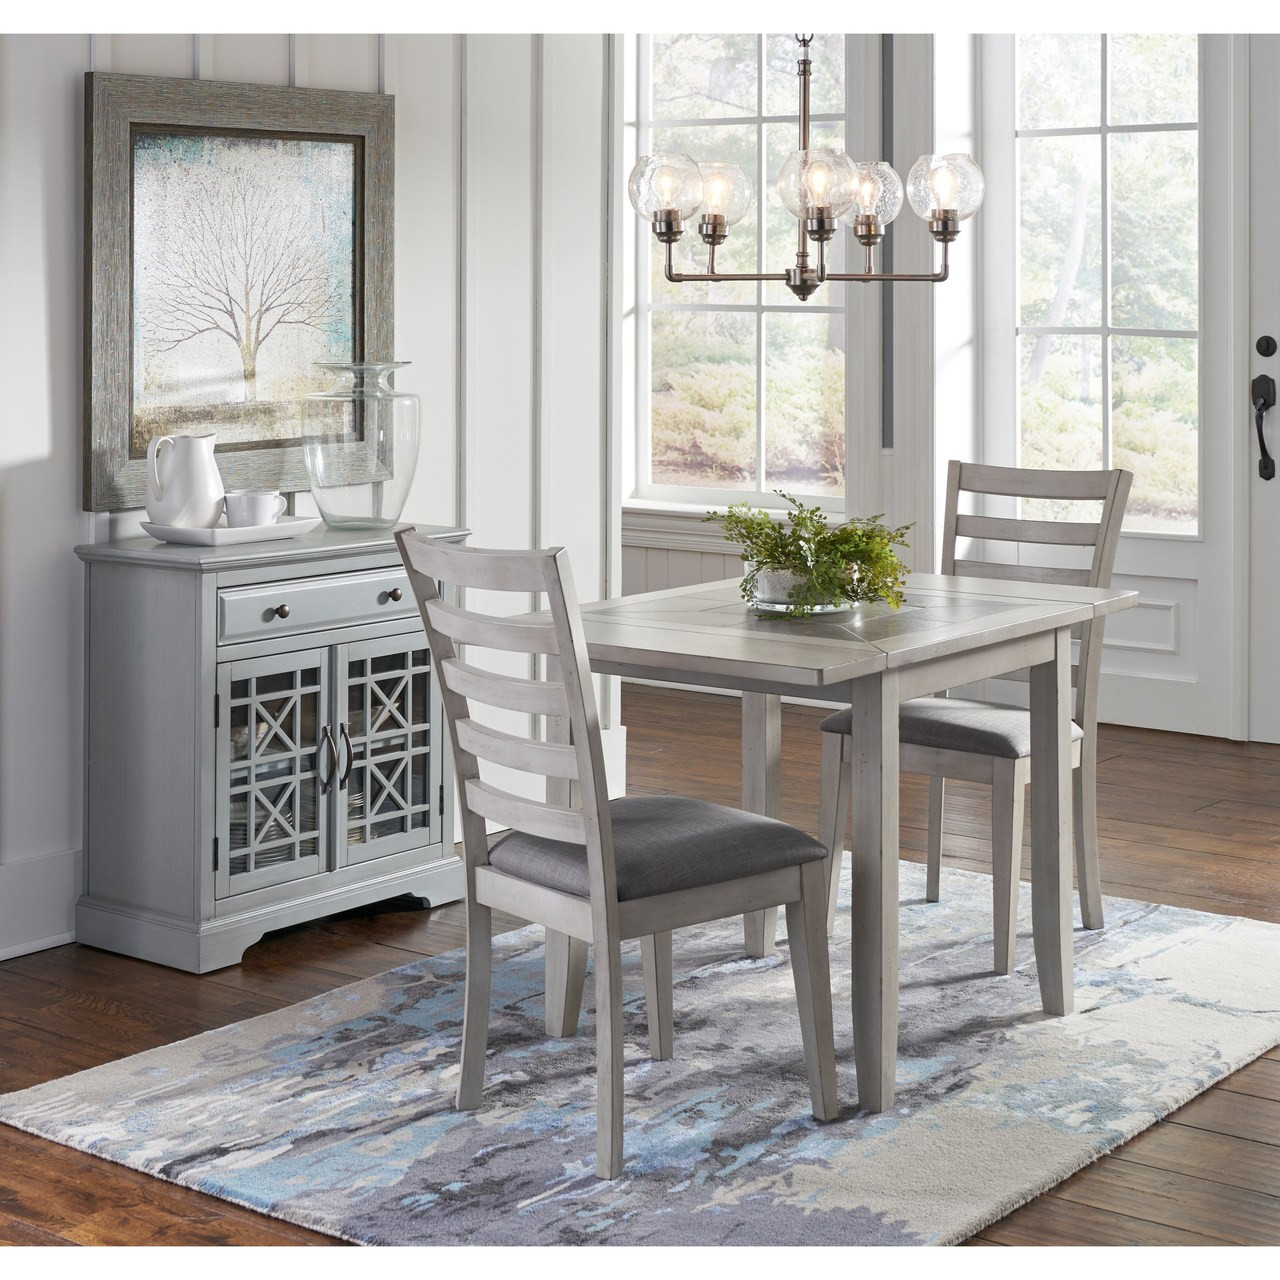 Buy Sarasota Springs 3 Piece Dining Set Includes Table And 2 Chairs On Sale Near Houston Friendswood League City Starfine Furniture Mattress